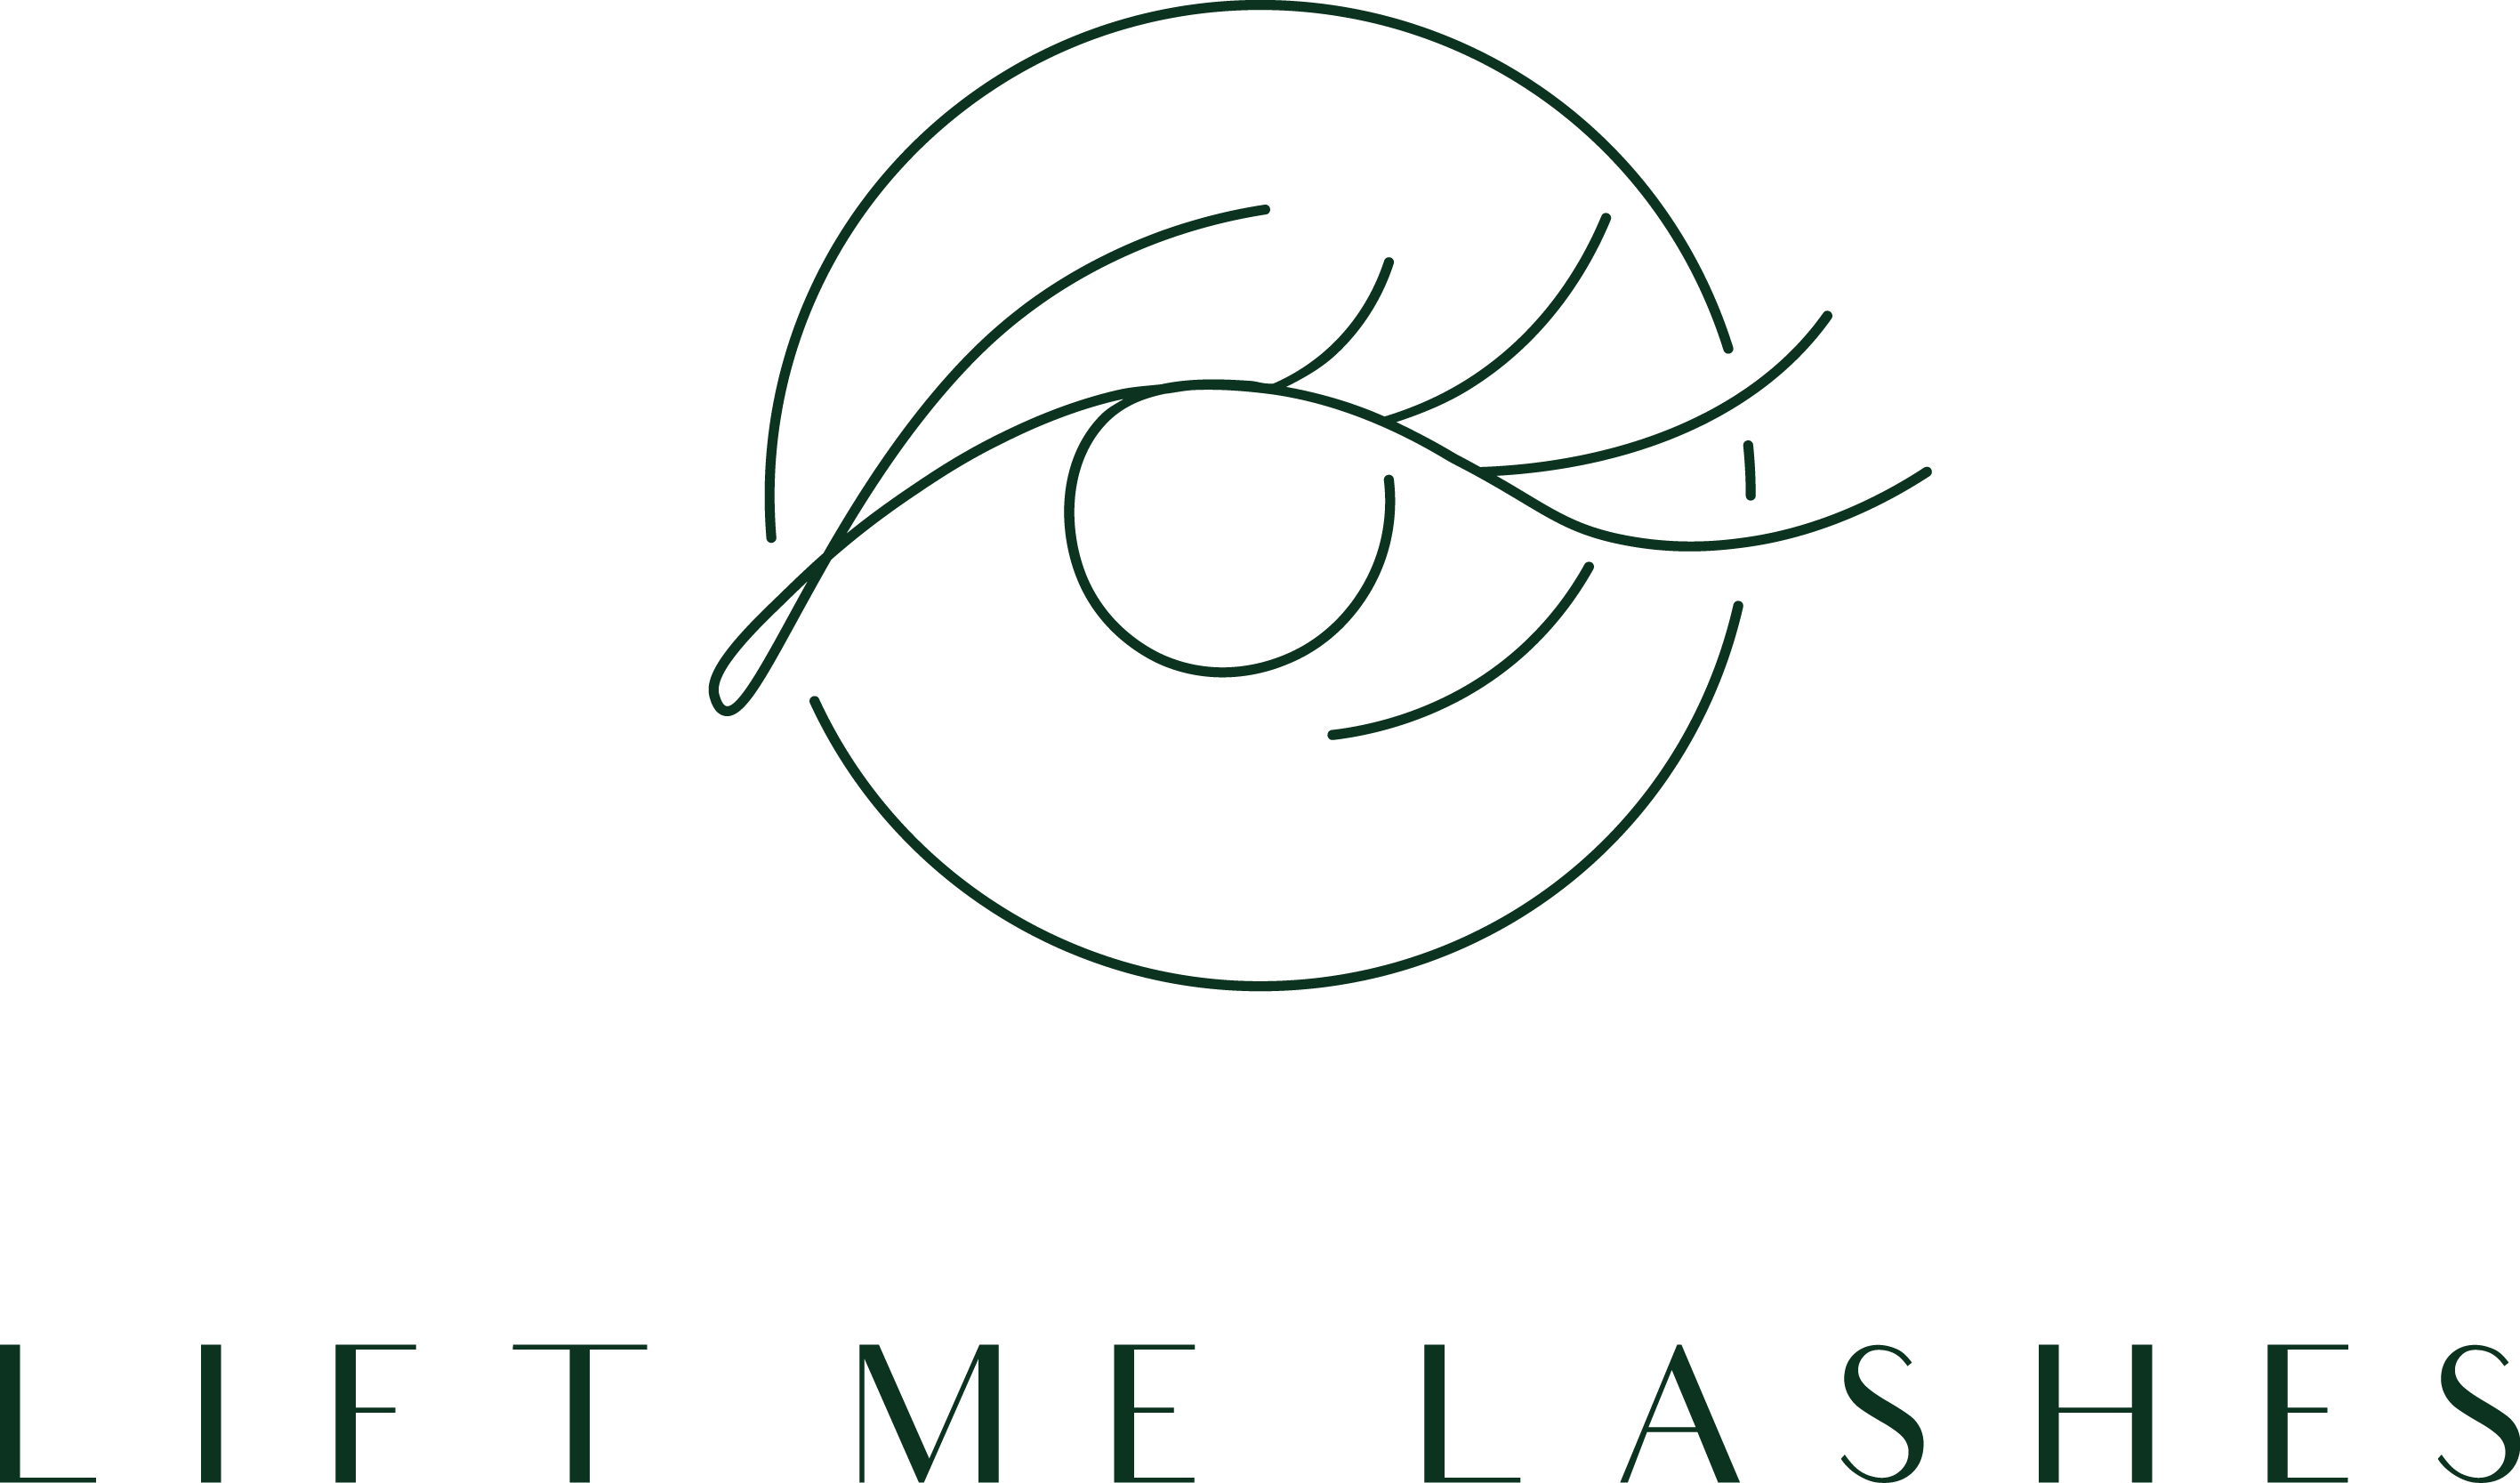 Design a Minimal, Sophisticated/Timeless, and Fluid Logo + Business Card for LIFT ME LASHES!